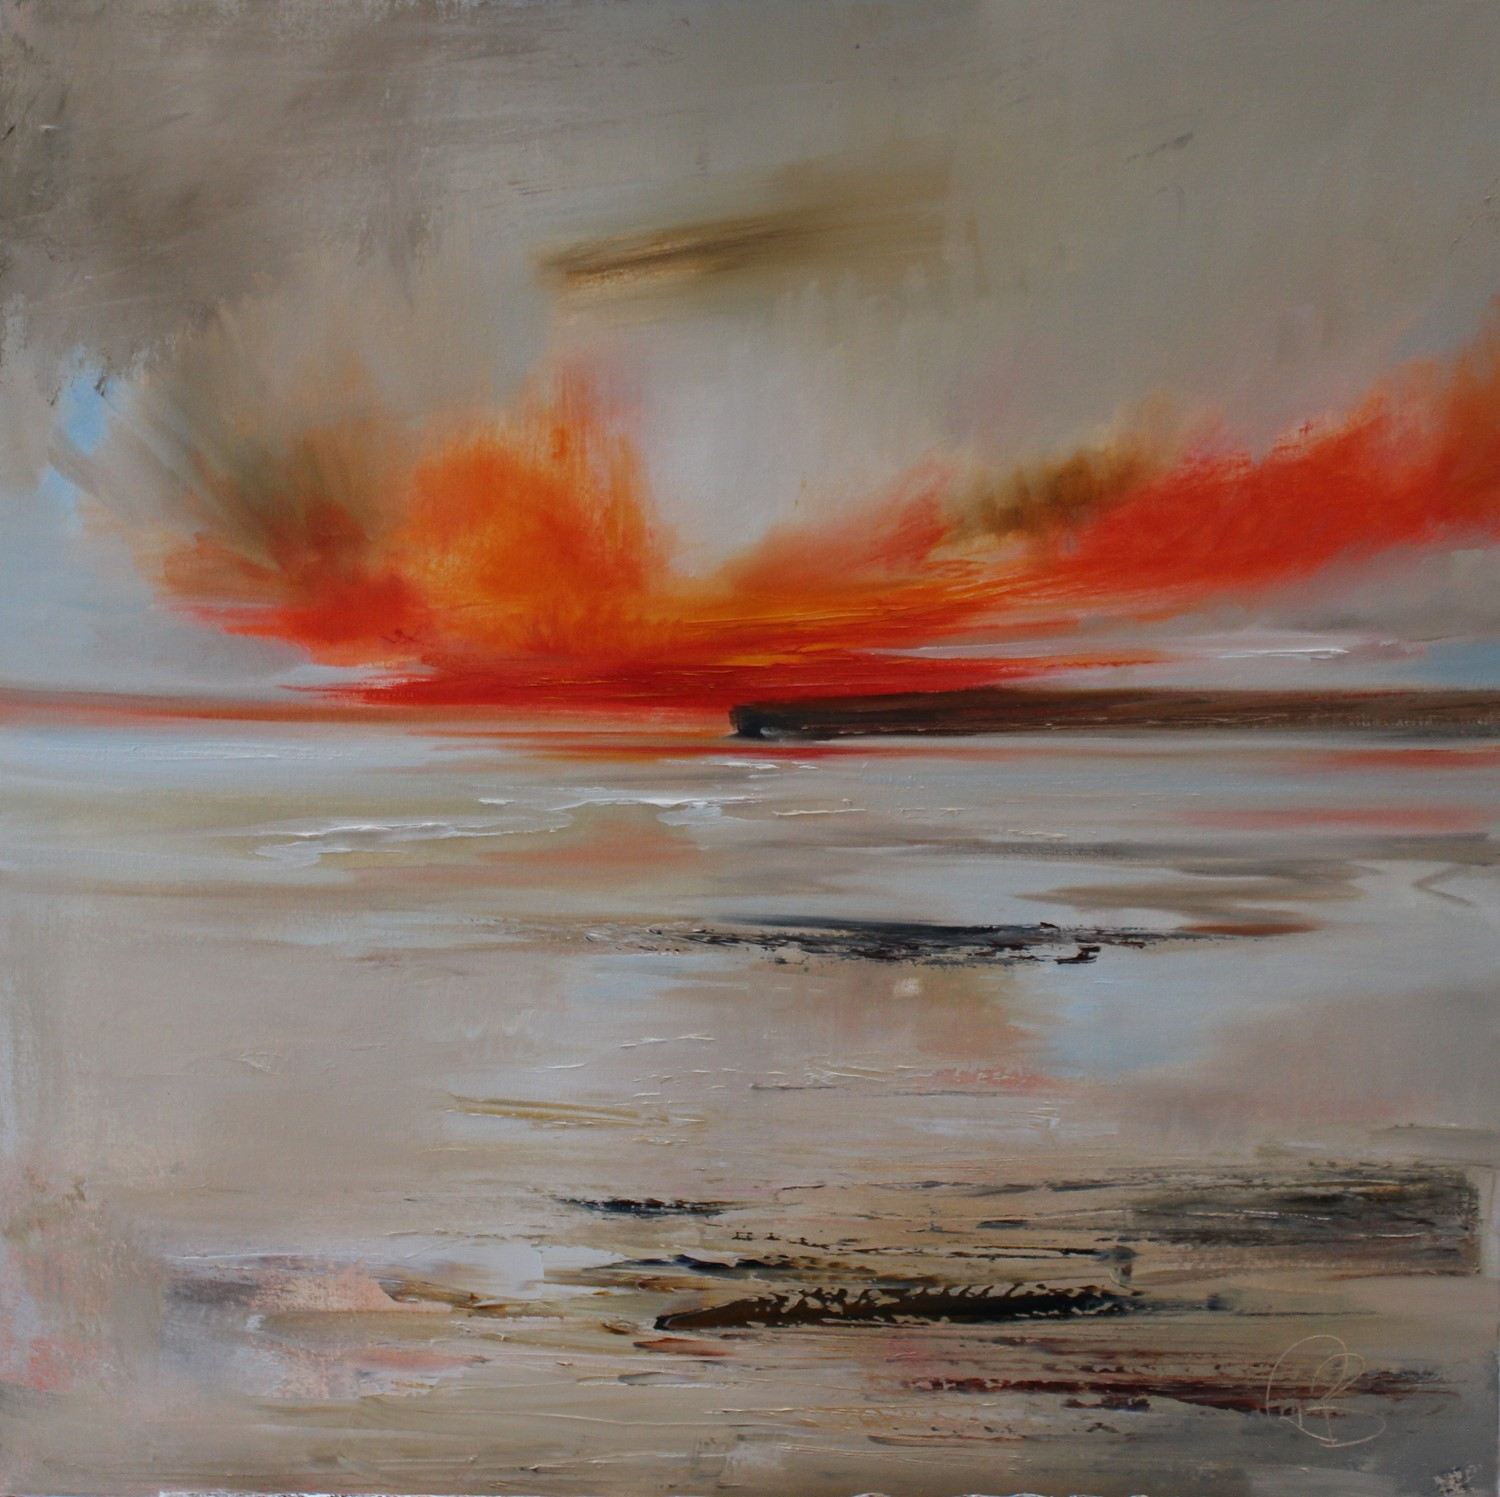 'A Flame Across the Horizon' by artist Rosanne Barr